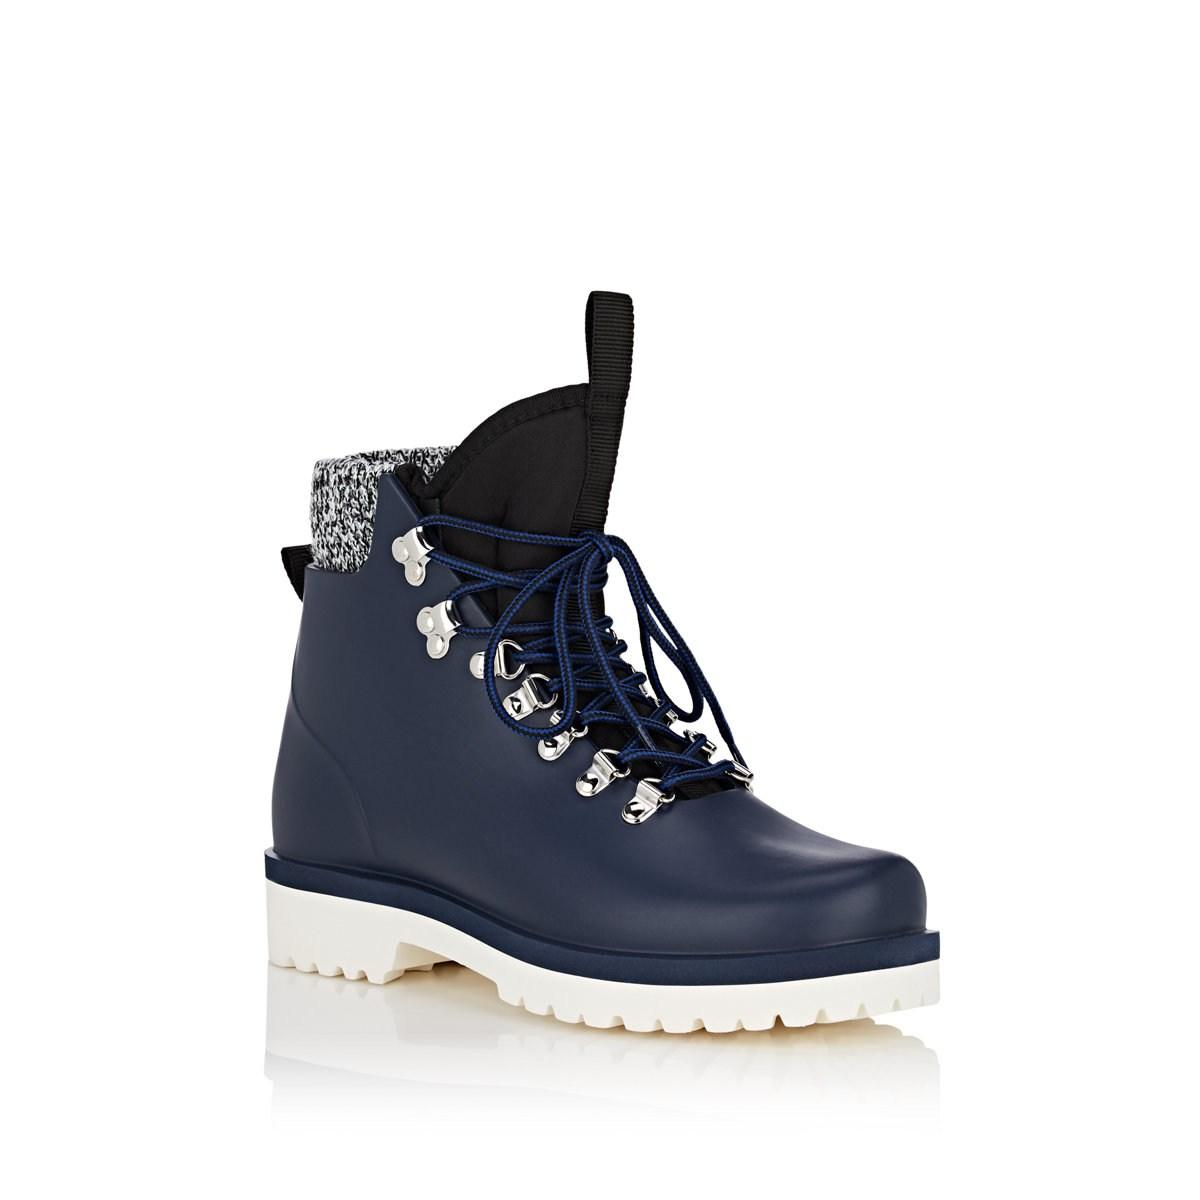 8c95696ee07 Barneys New York Blue Victor Rubber Lace-up Ankle Boots. View fullscreen